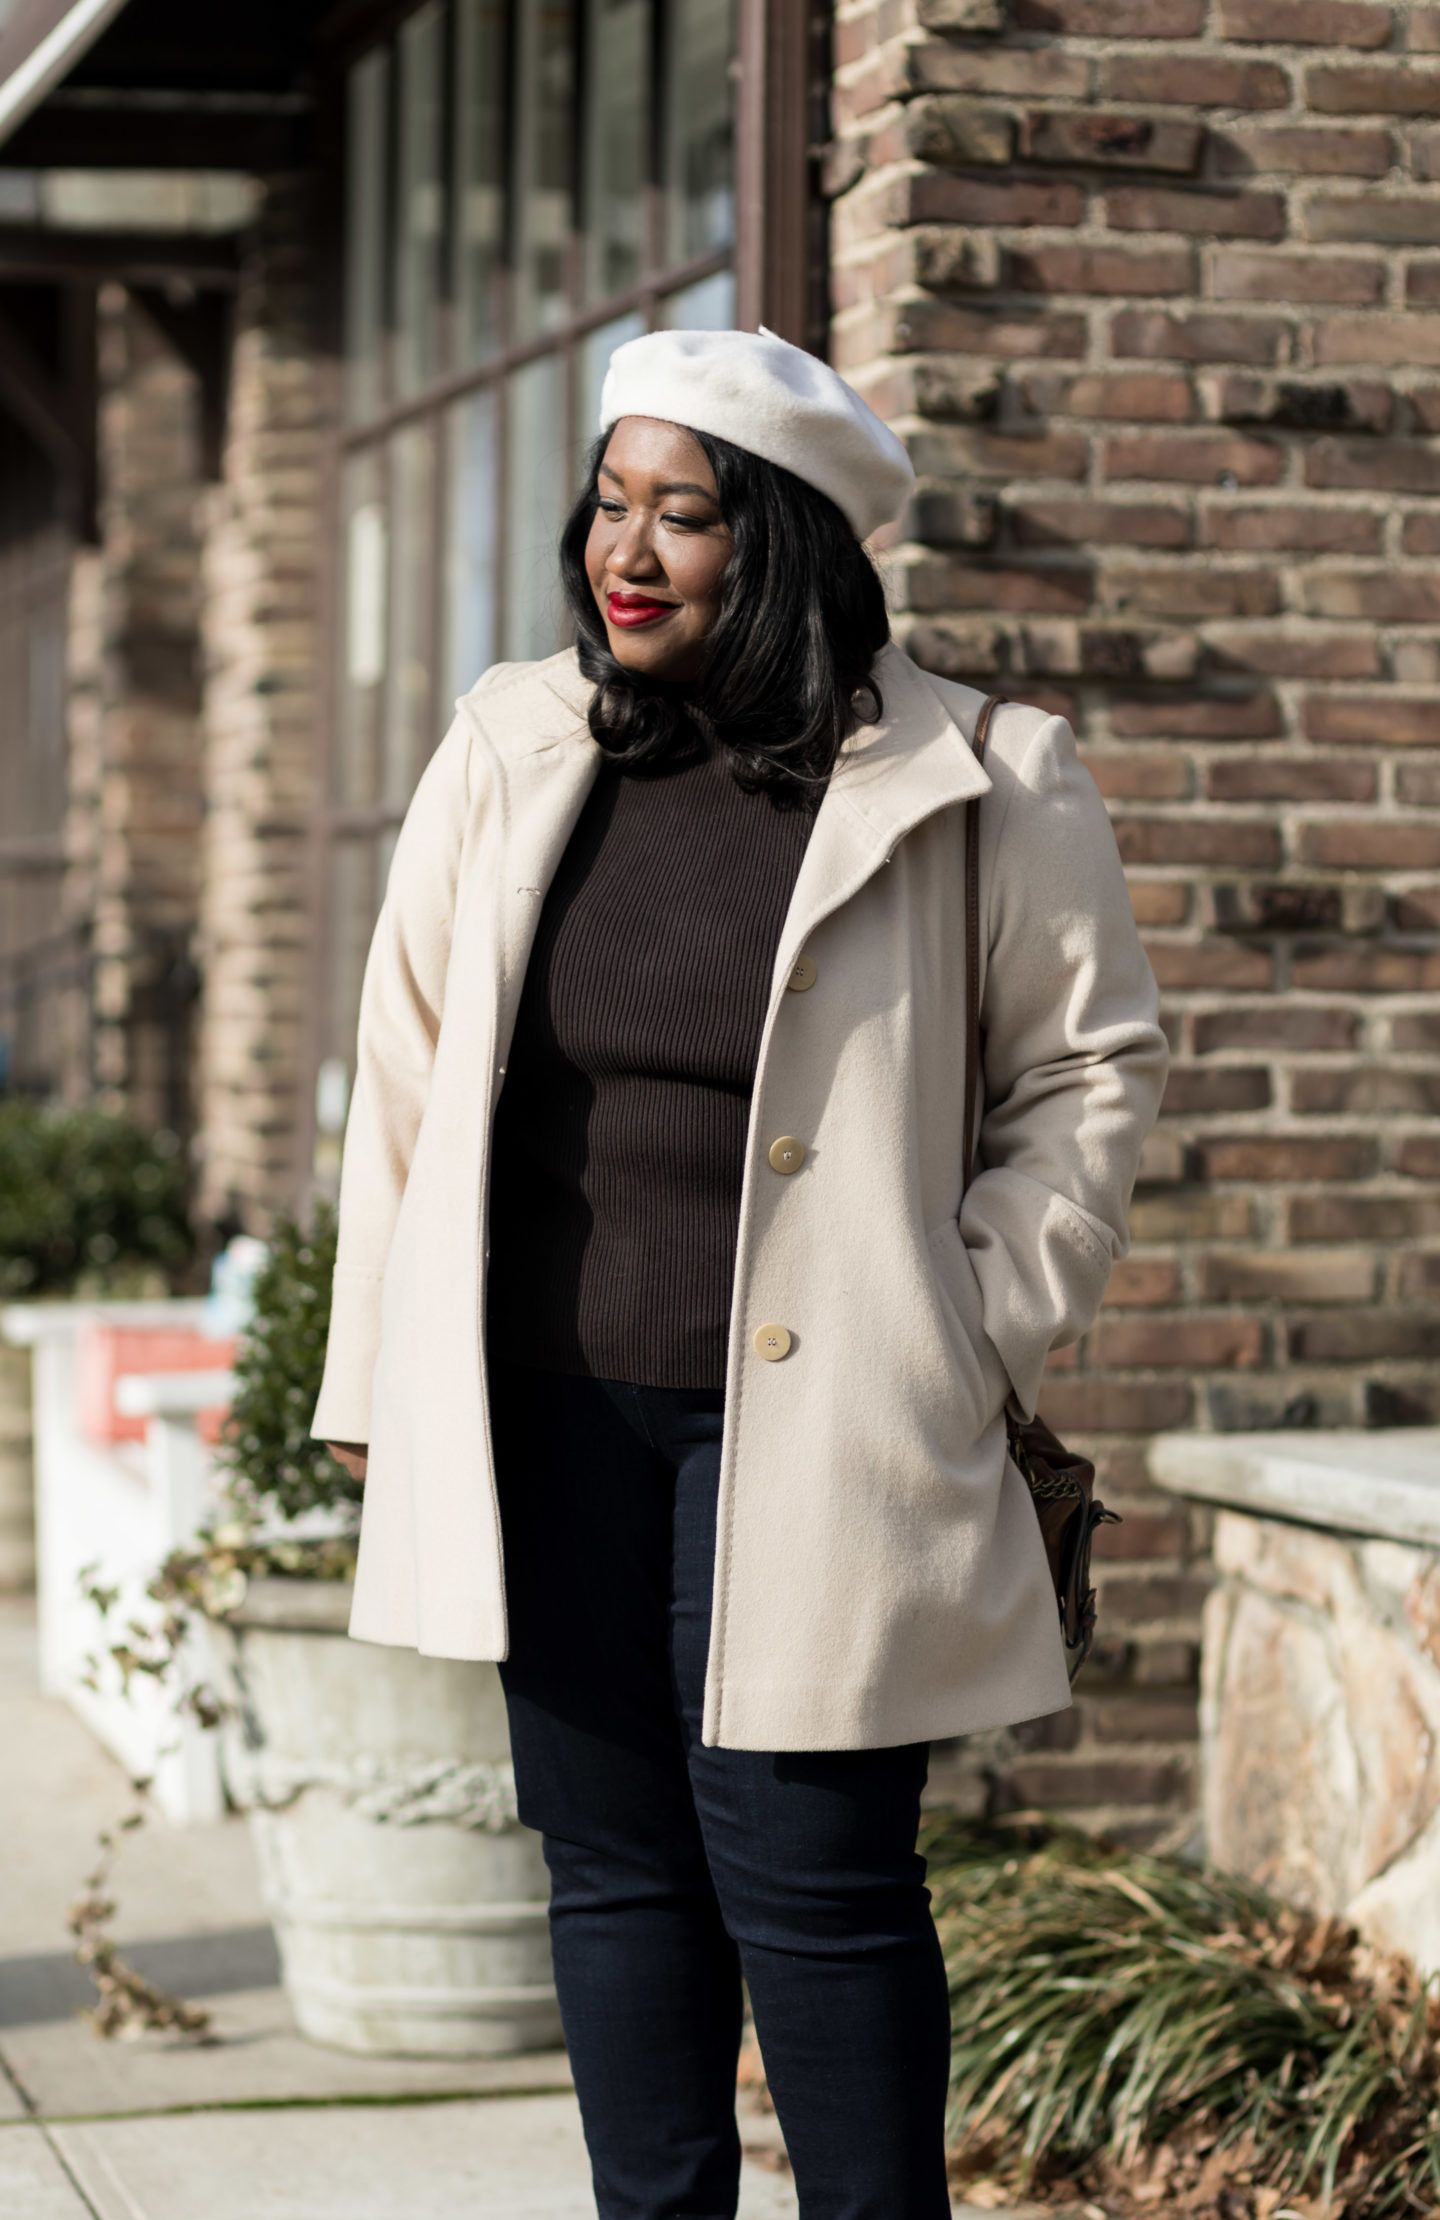 4e8c5bac60 Plus Size Neutral Coat Outfit Idea • Plus Size Fashion • Shifting into  Neutral• Shapely Chic Sheri  plussize  plussizeoutfits  ootd  style